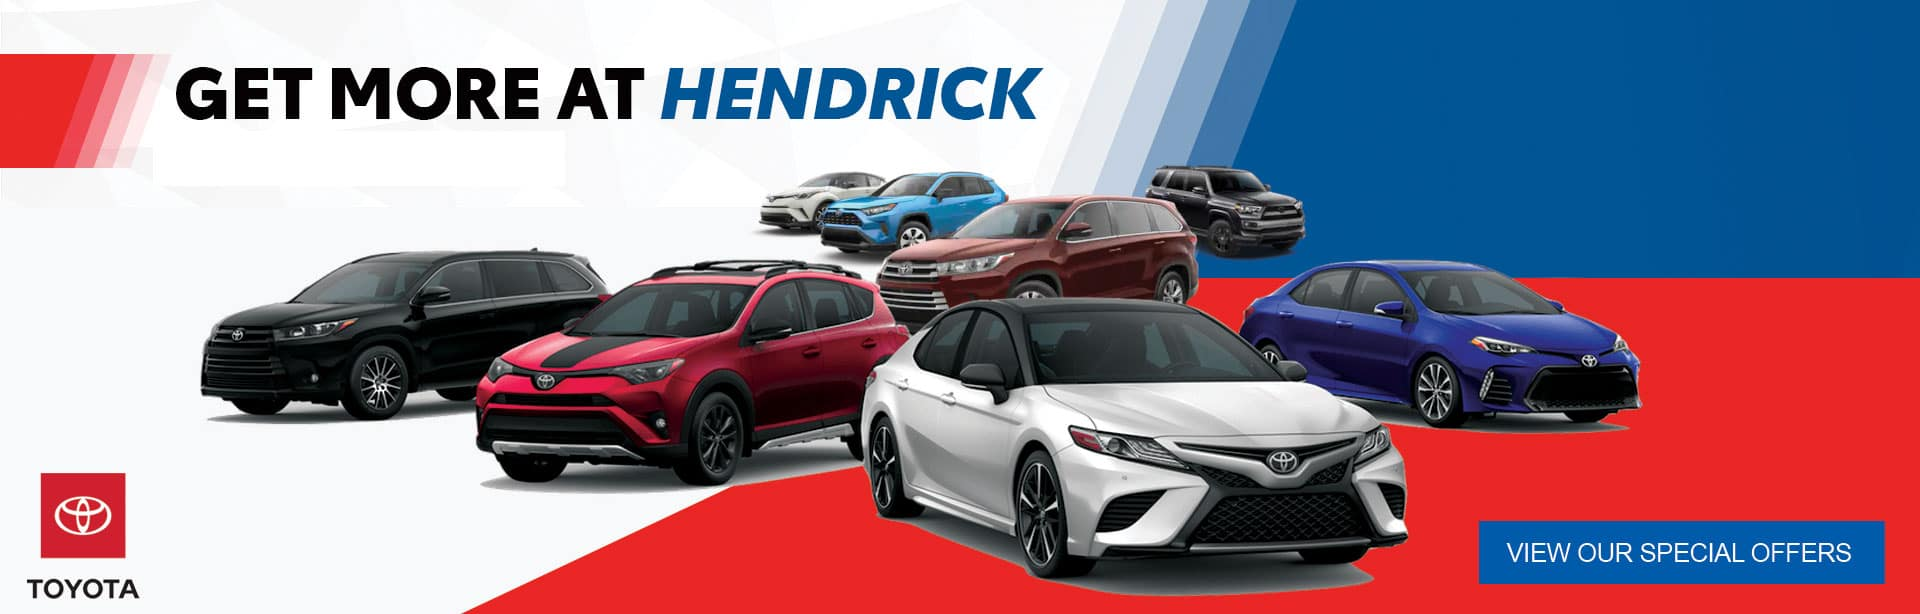 Toyota Dealerships In Nc >> Hendrick Toyota Concord Toyota Dealer In Concord Nc